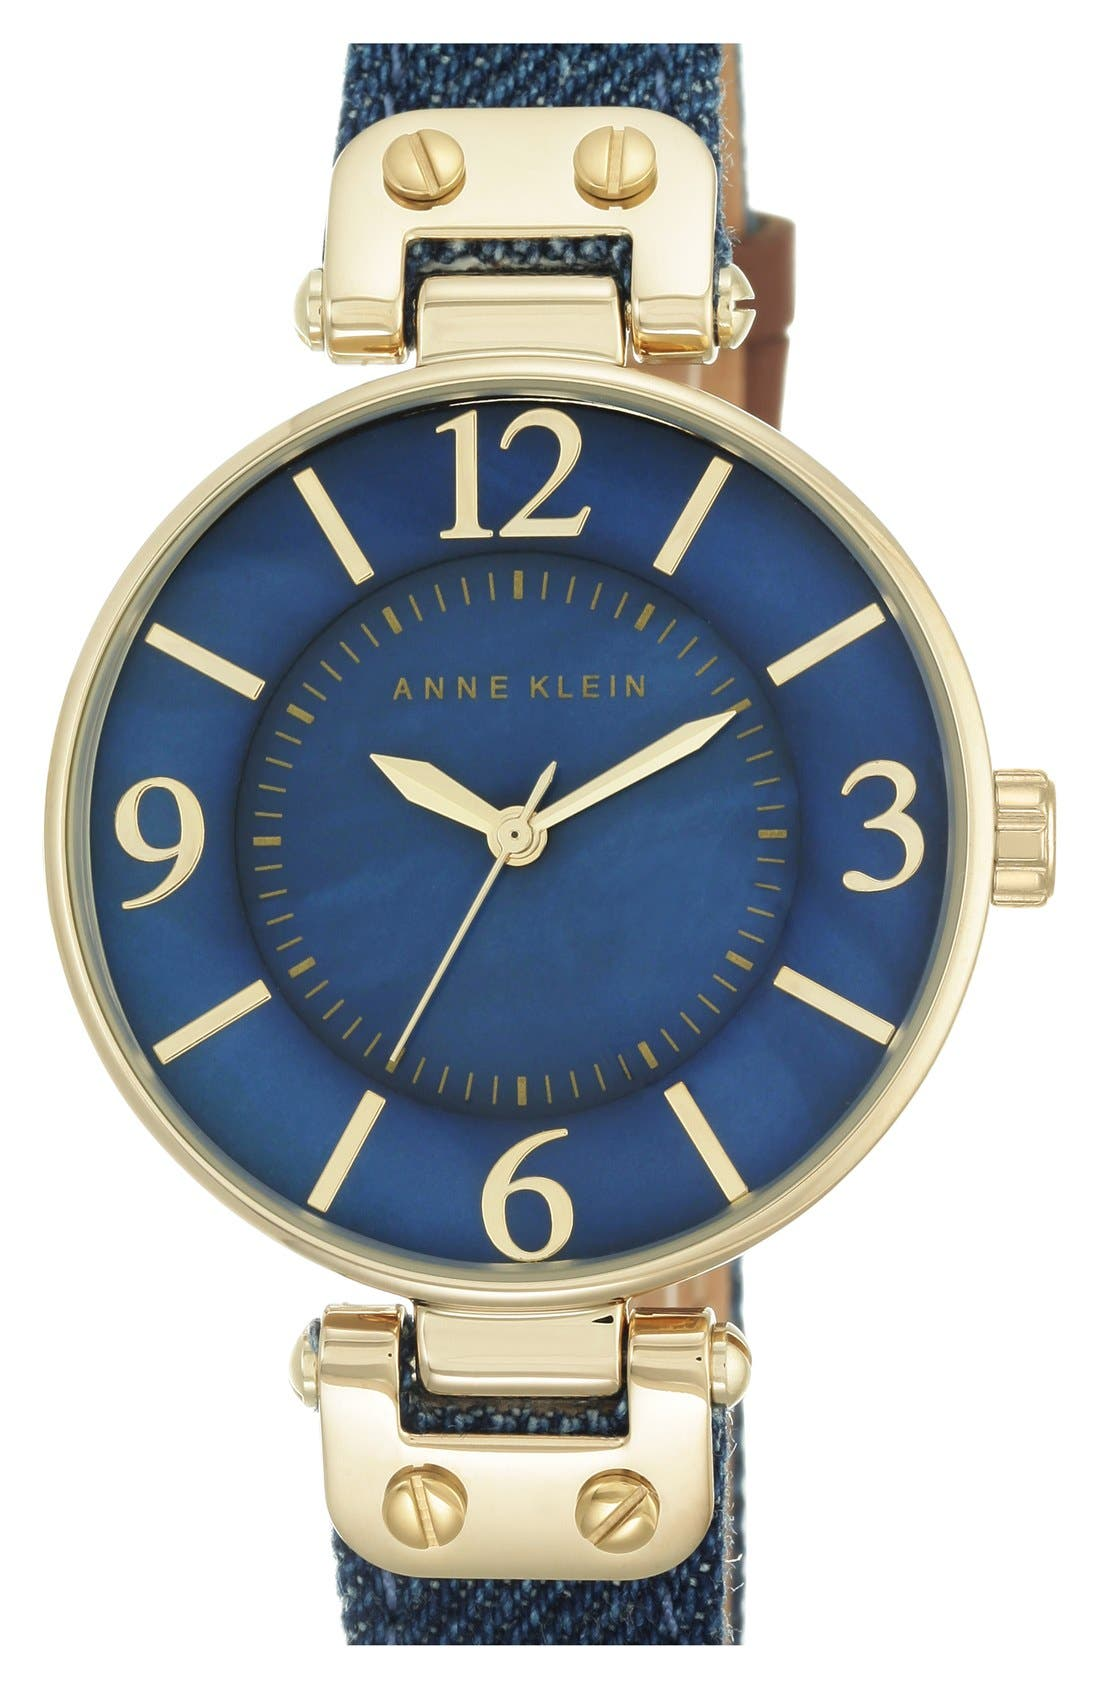 ANNE KLEIN, Denim Strap Watch, 34mm, Main thumbnail 1, color, 400